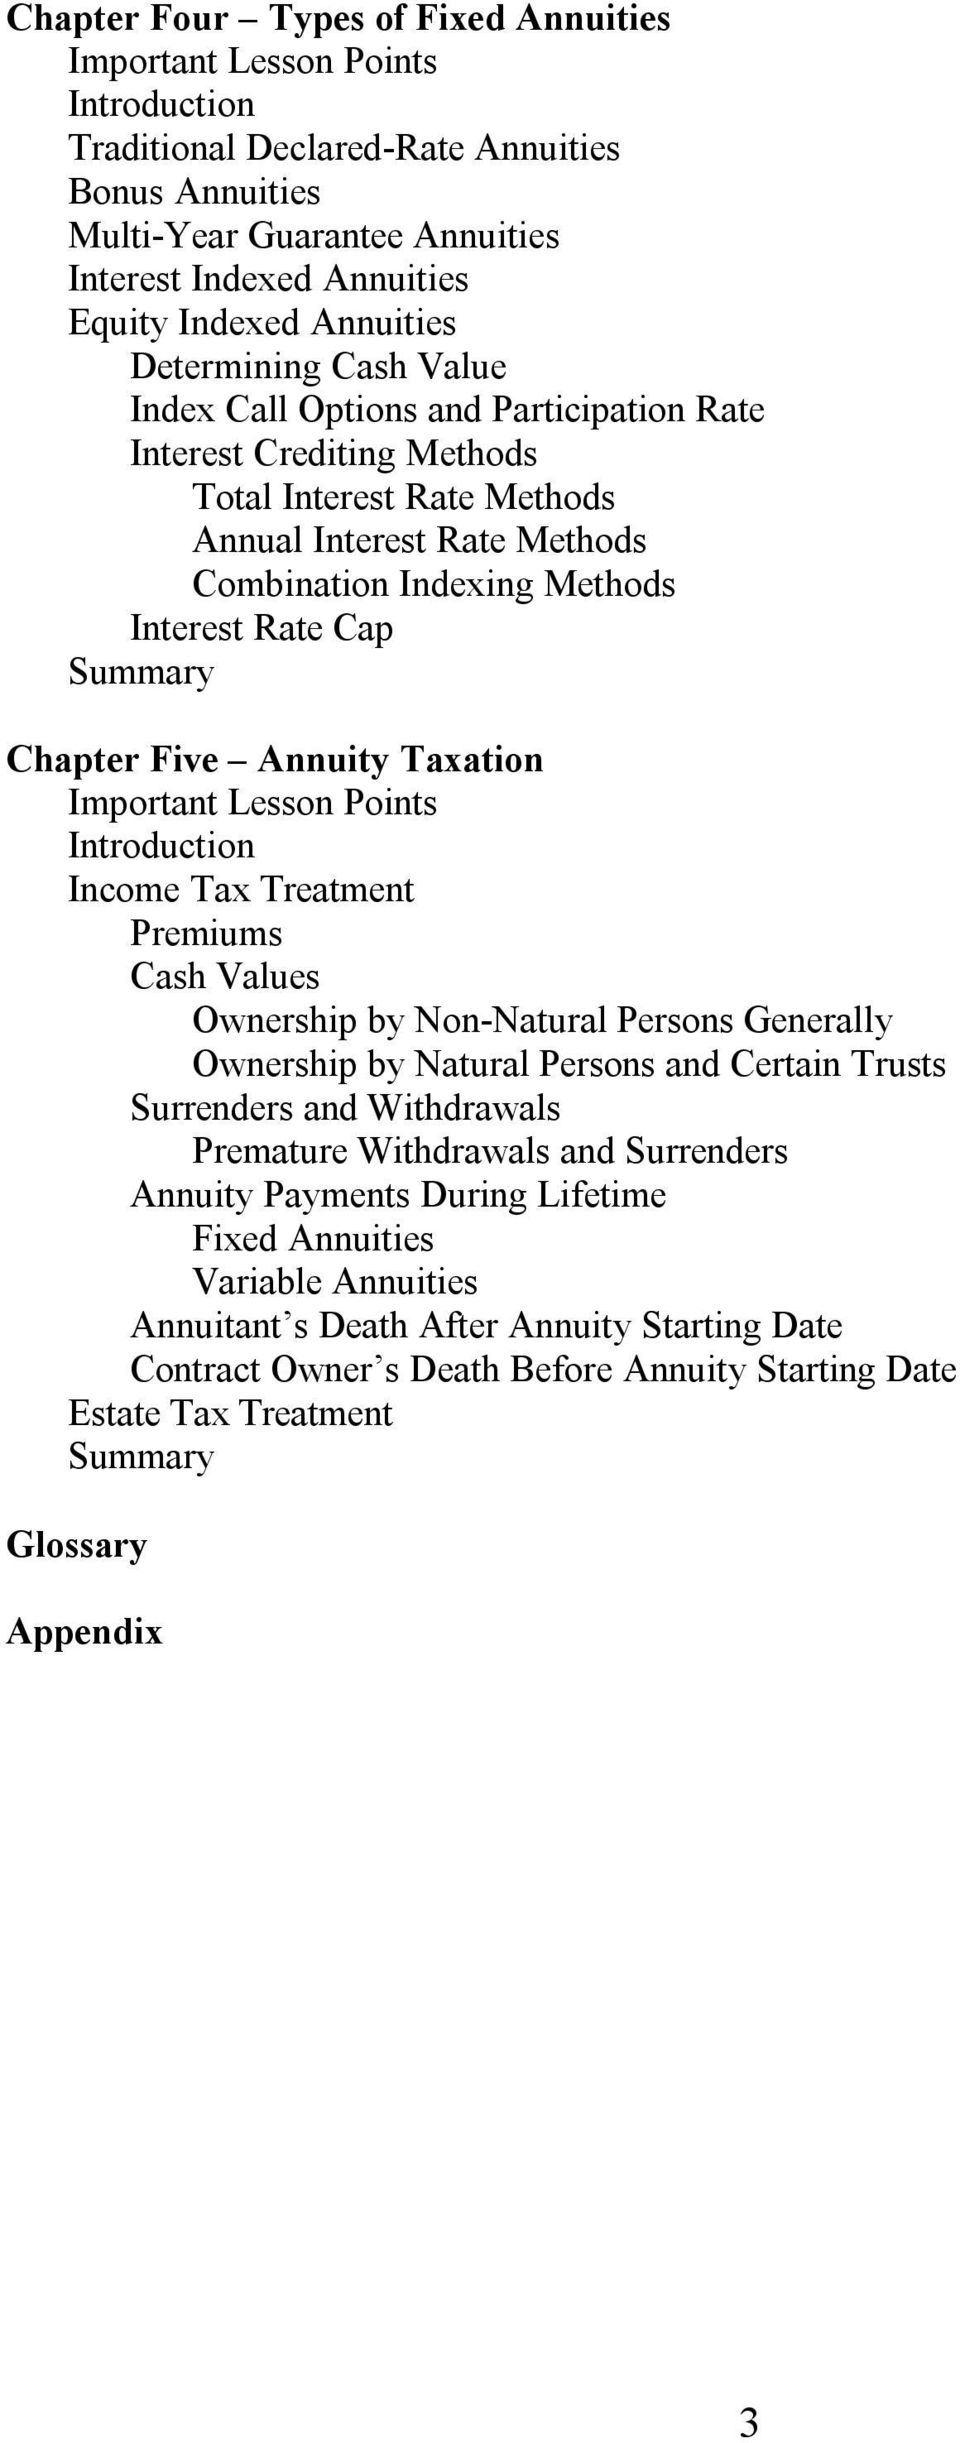 Rate Cap Summary Chapter Five Annuity Taxation Important Lesson Points Introduction Income Tax Treatment Premiums Cash Values Ownership by Non-Natural Persons Generally Ownership by Natural Persons